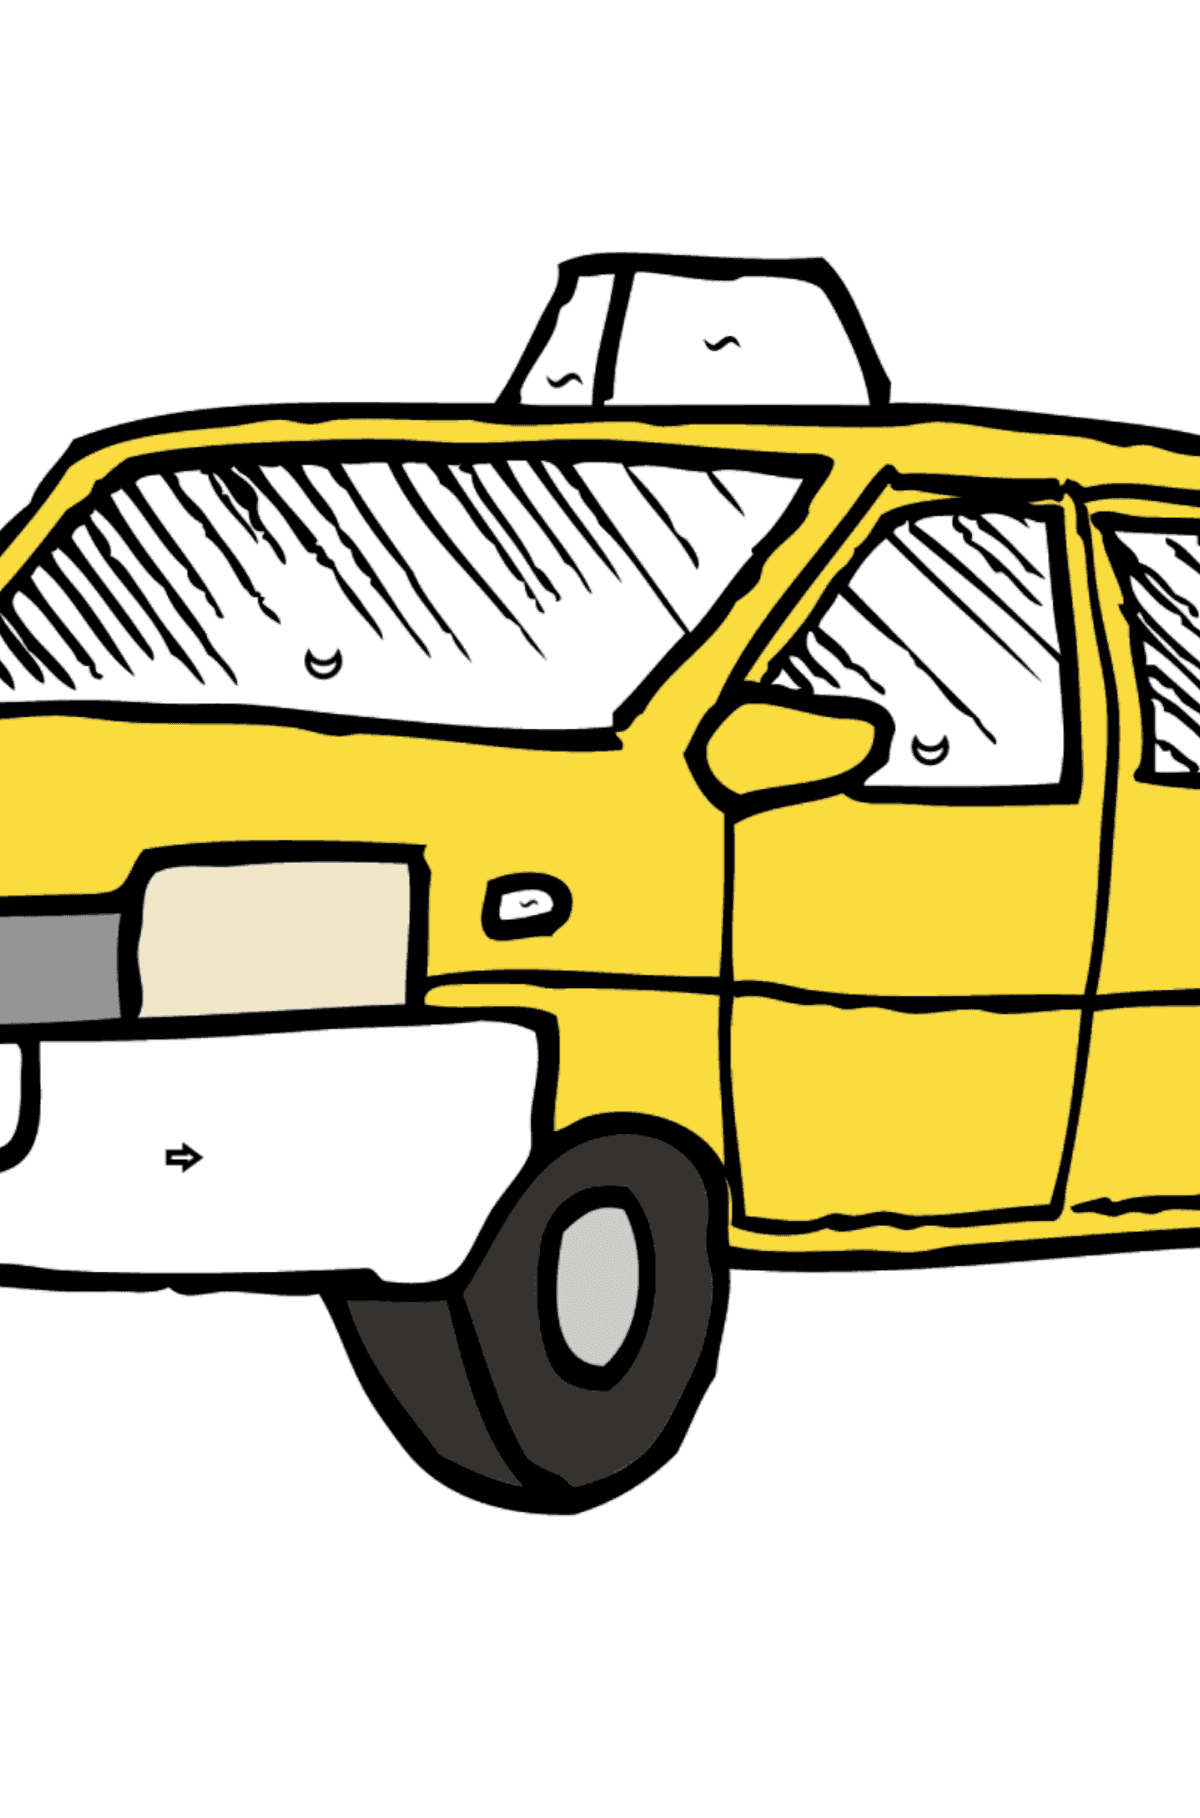 Coloring Page - A Yellow Taxi - Coloring by Symbols and Geometric Shapes for Kids